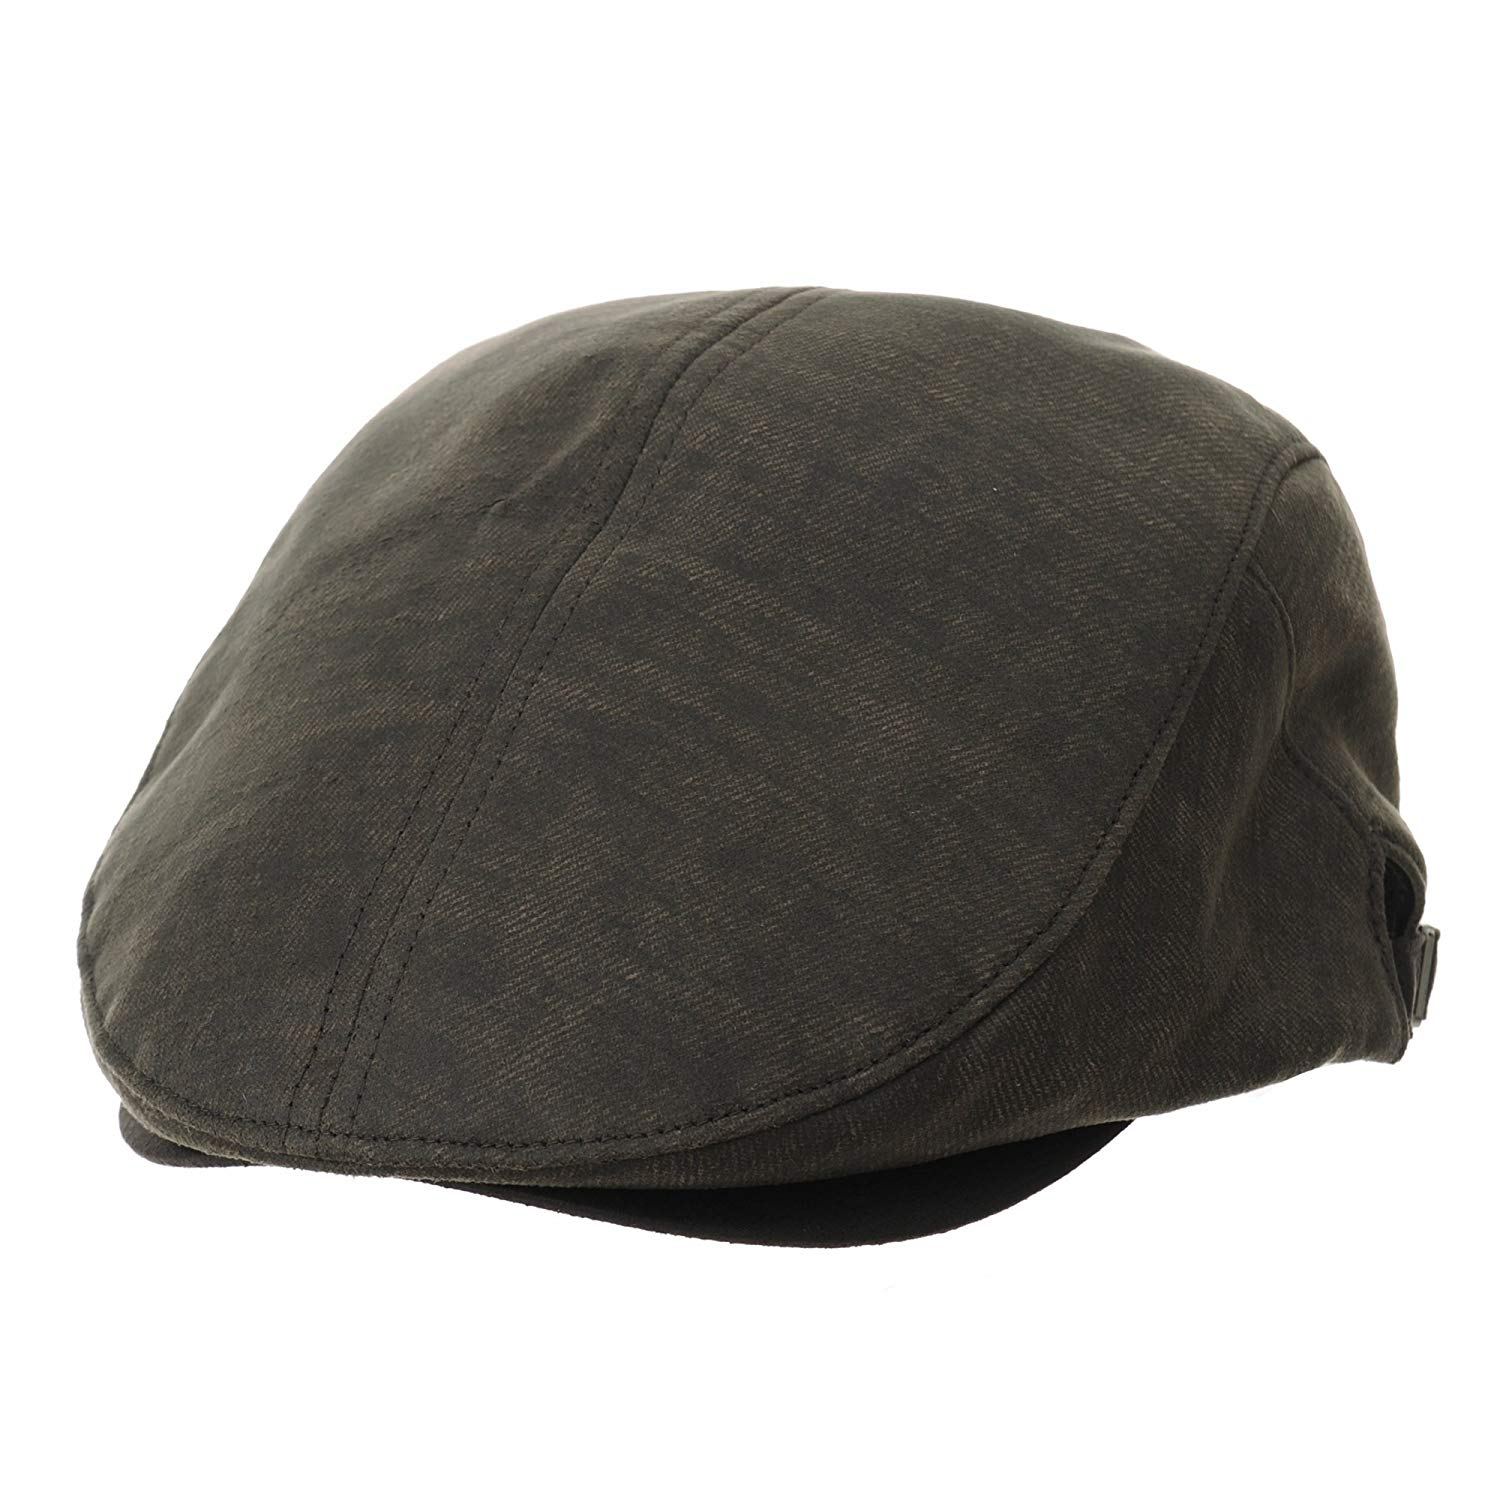 d40dfacb0df Get Quotations · WITHMOONS Faux Leather Newsboy Hat Simple Flat Cap CR3798